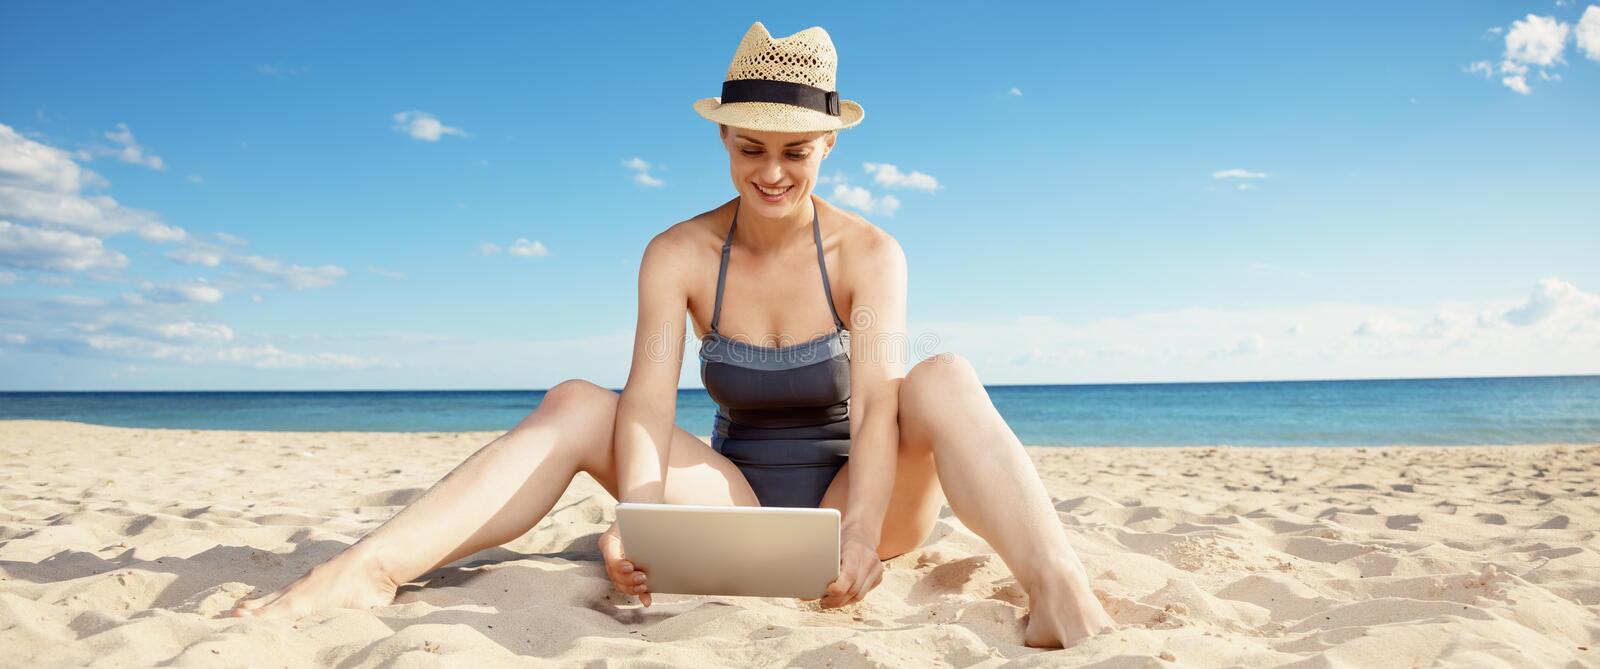 Happy young woman in swimwear on beach using tablet PC royalty free stock image